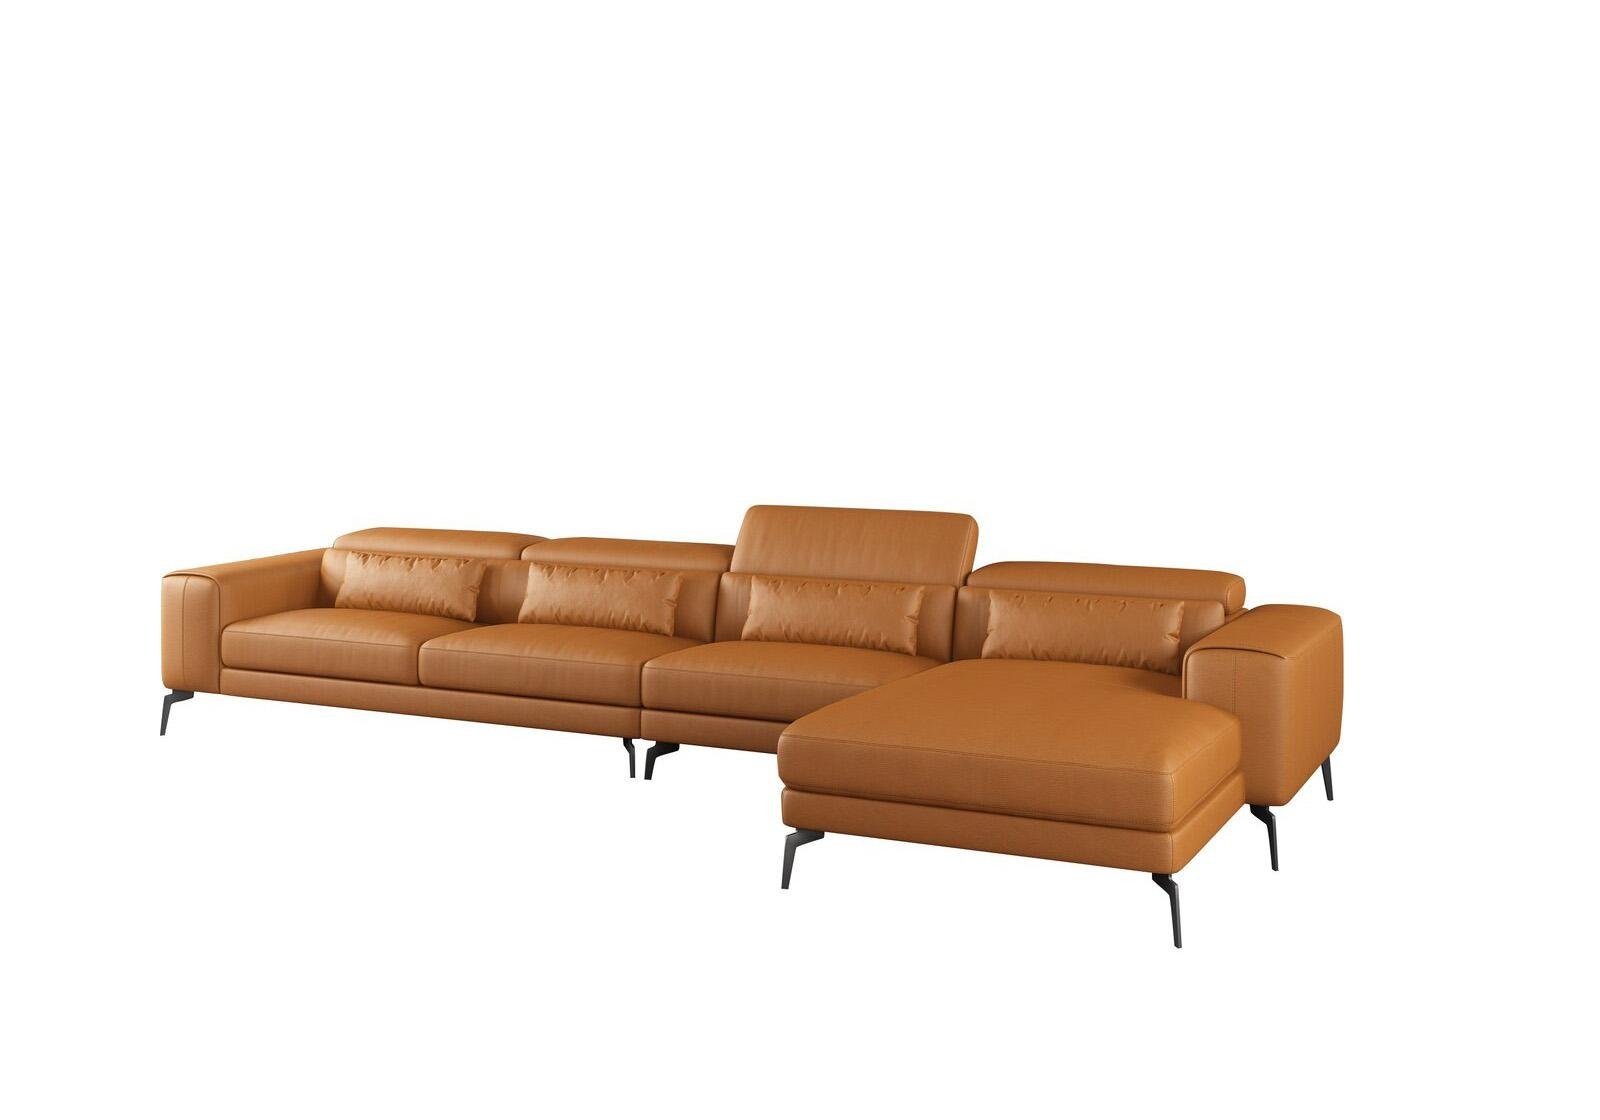 Contemporary, Modern Cognac Leather and Wood, Solid Hardwood 4 seat Sectional Sofa RHC CAVOUR by European Furniture